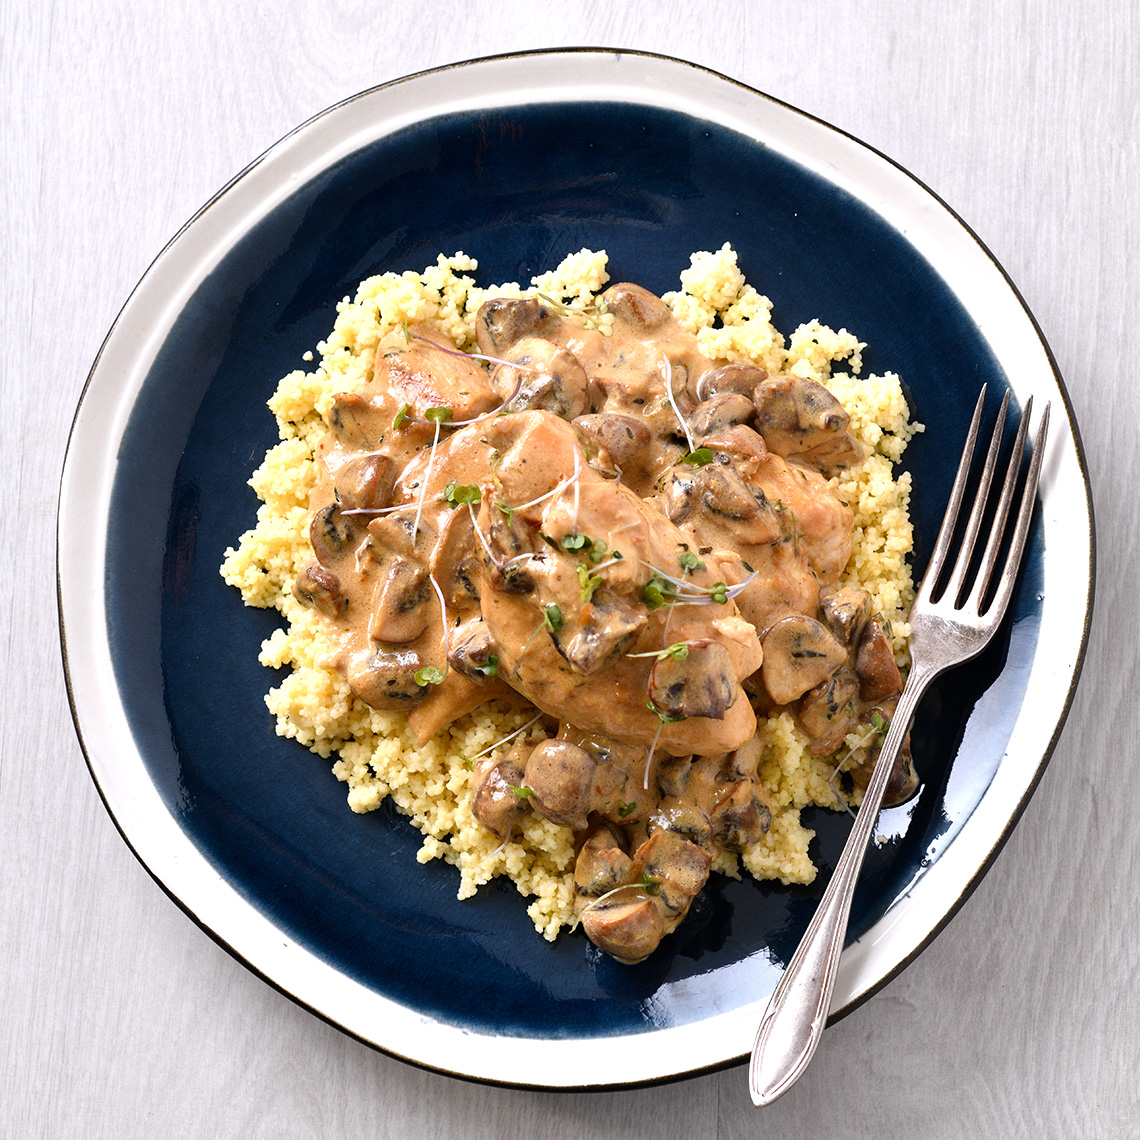 Creamy chicken topped with mushroom thyme sauce